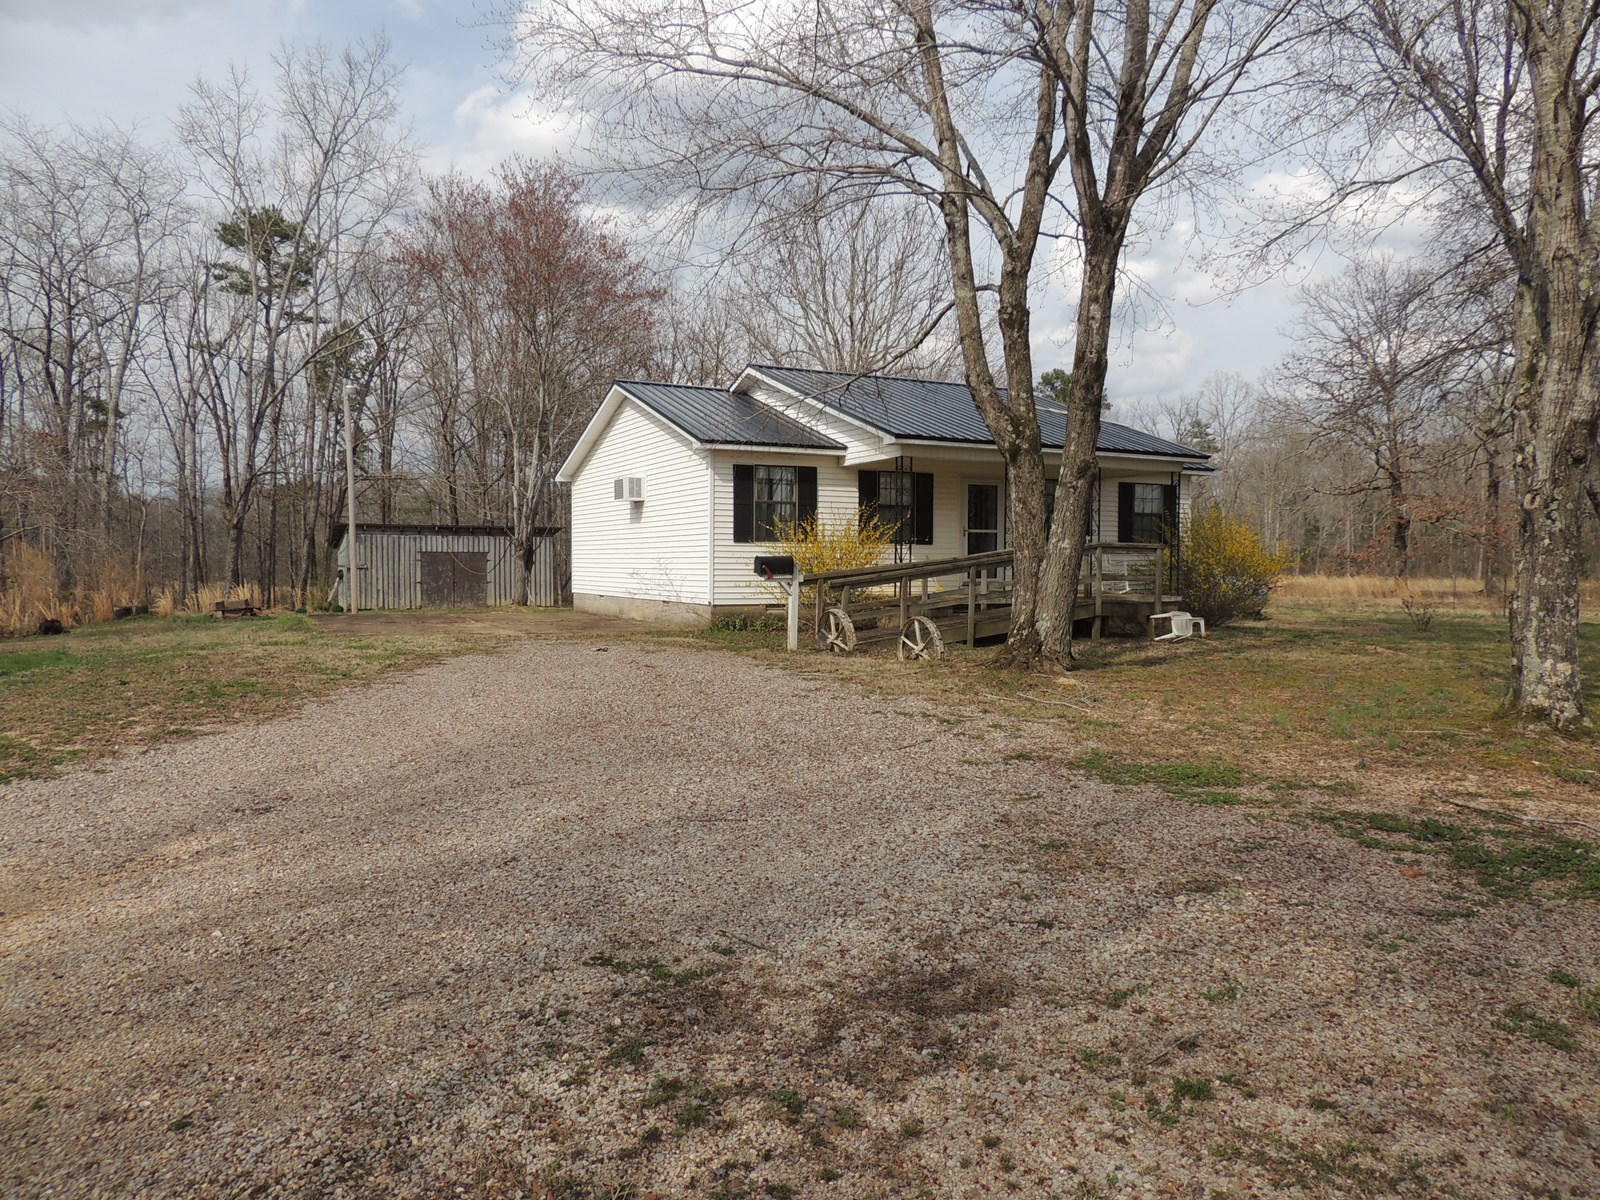 AFFORDABLE HOME FOR SALE WITH ACREAGE AND STORAGE